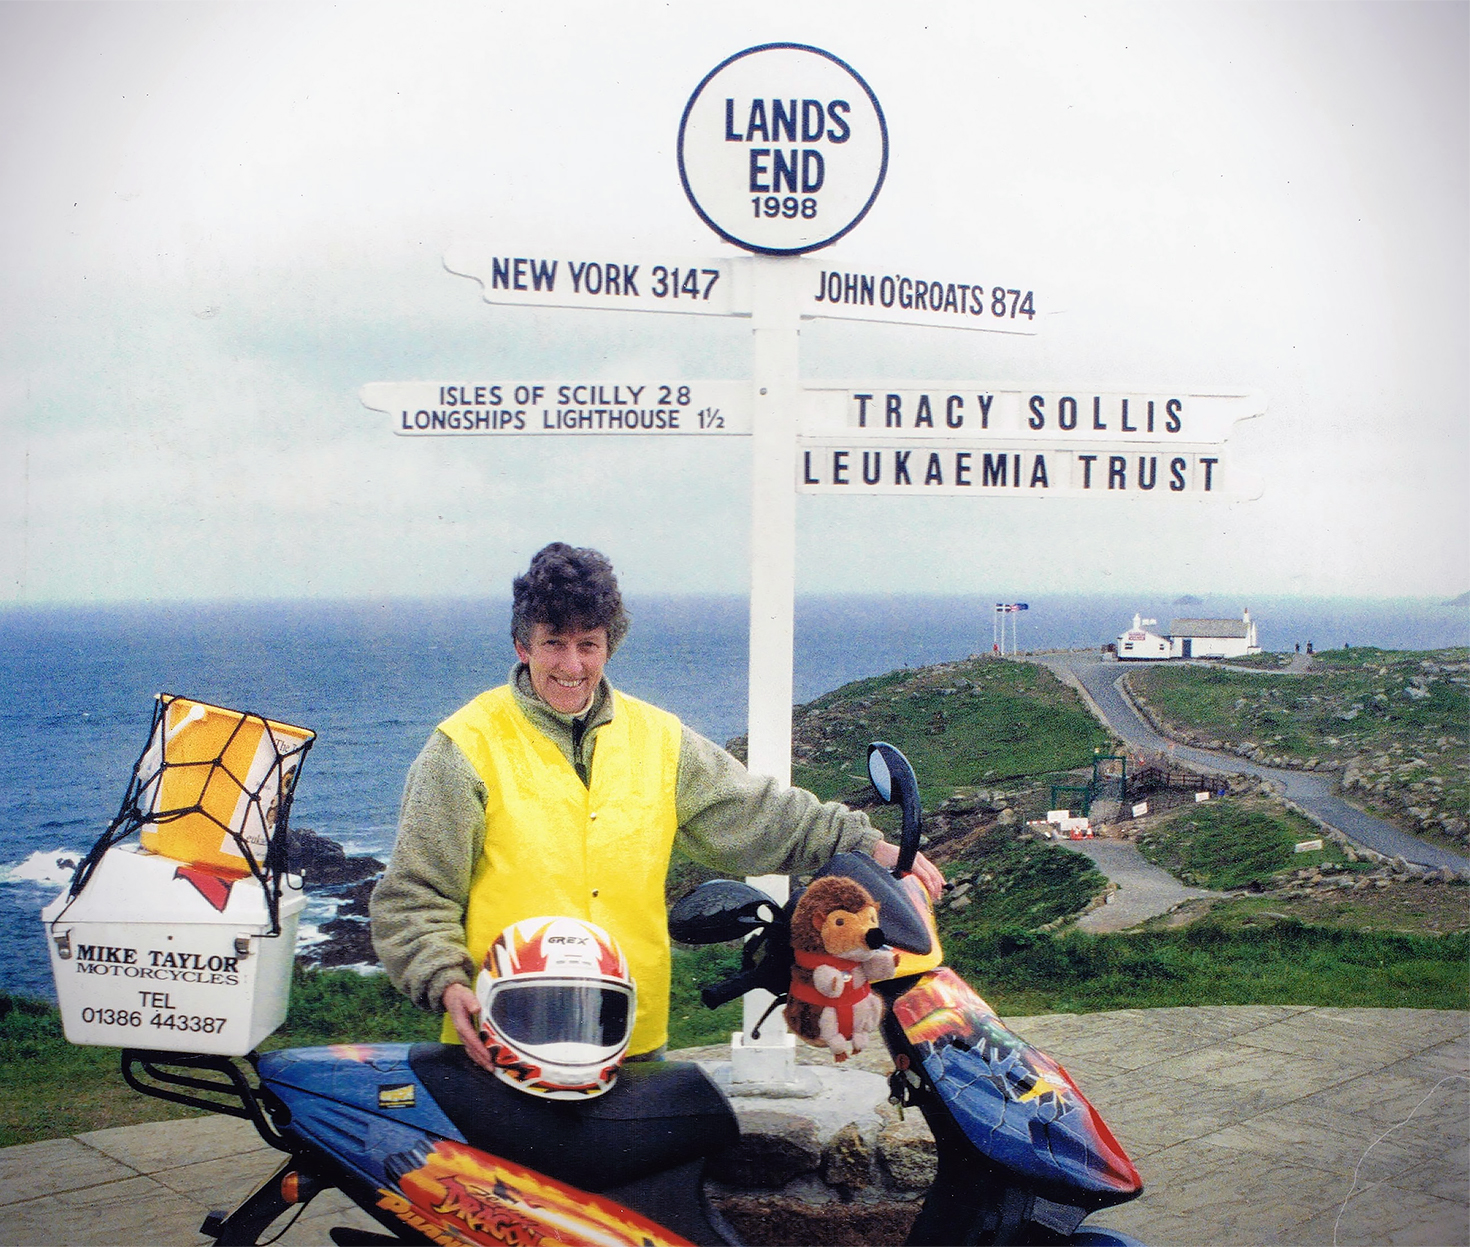 Sue Sollis at Lands End with Harry Hedgehog